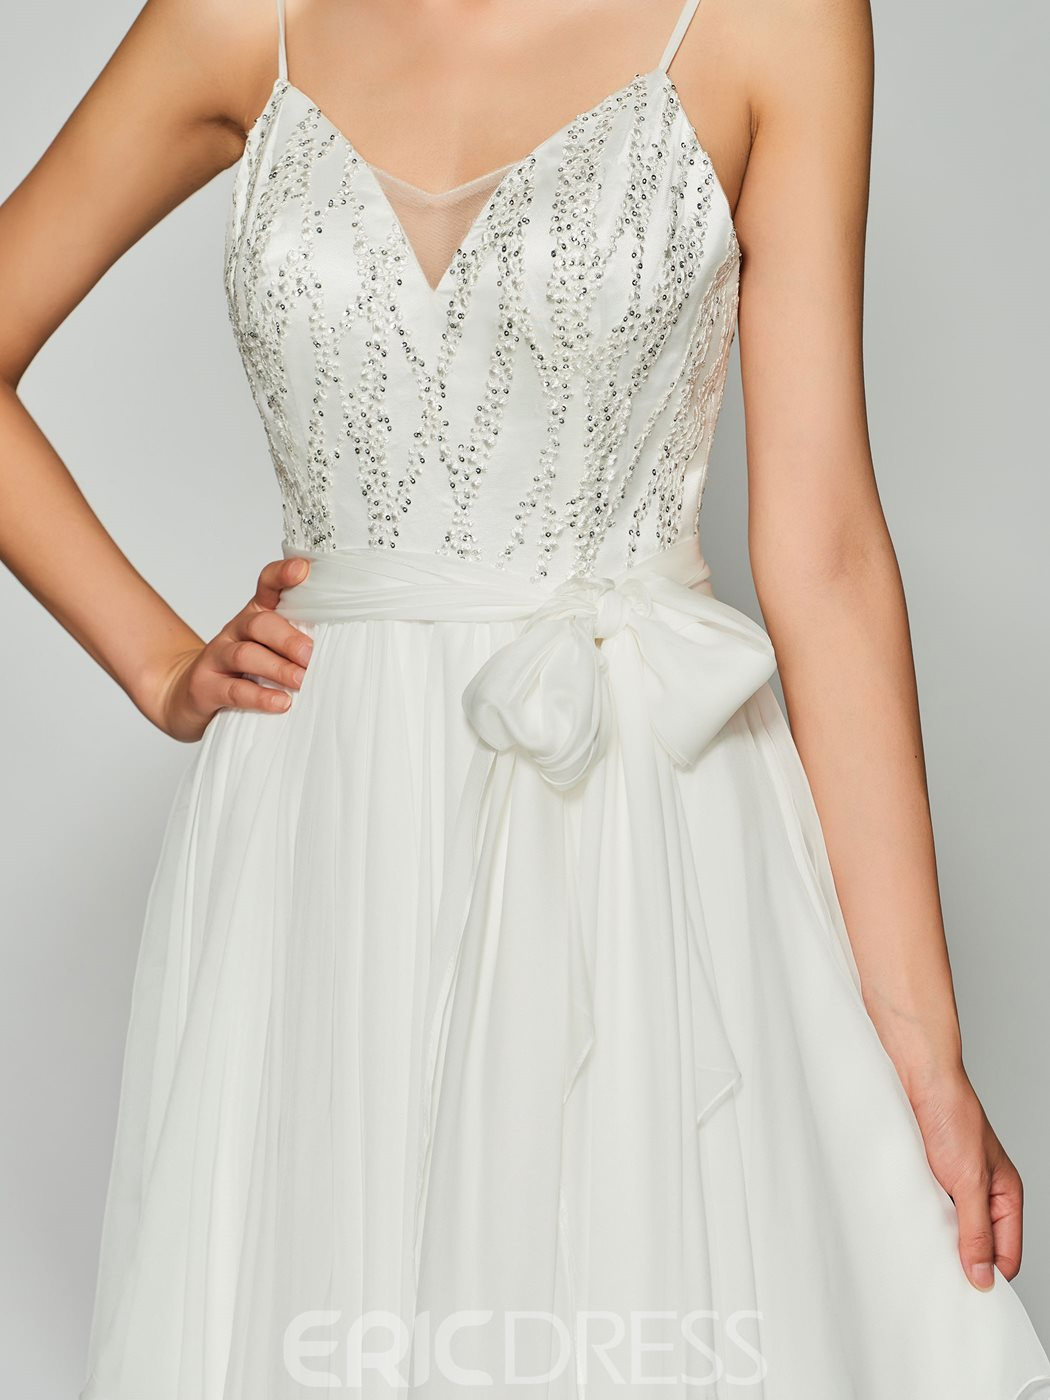 Ericdress A Line Spaghetti Straps Beaded Backless Prom Dress